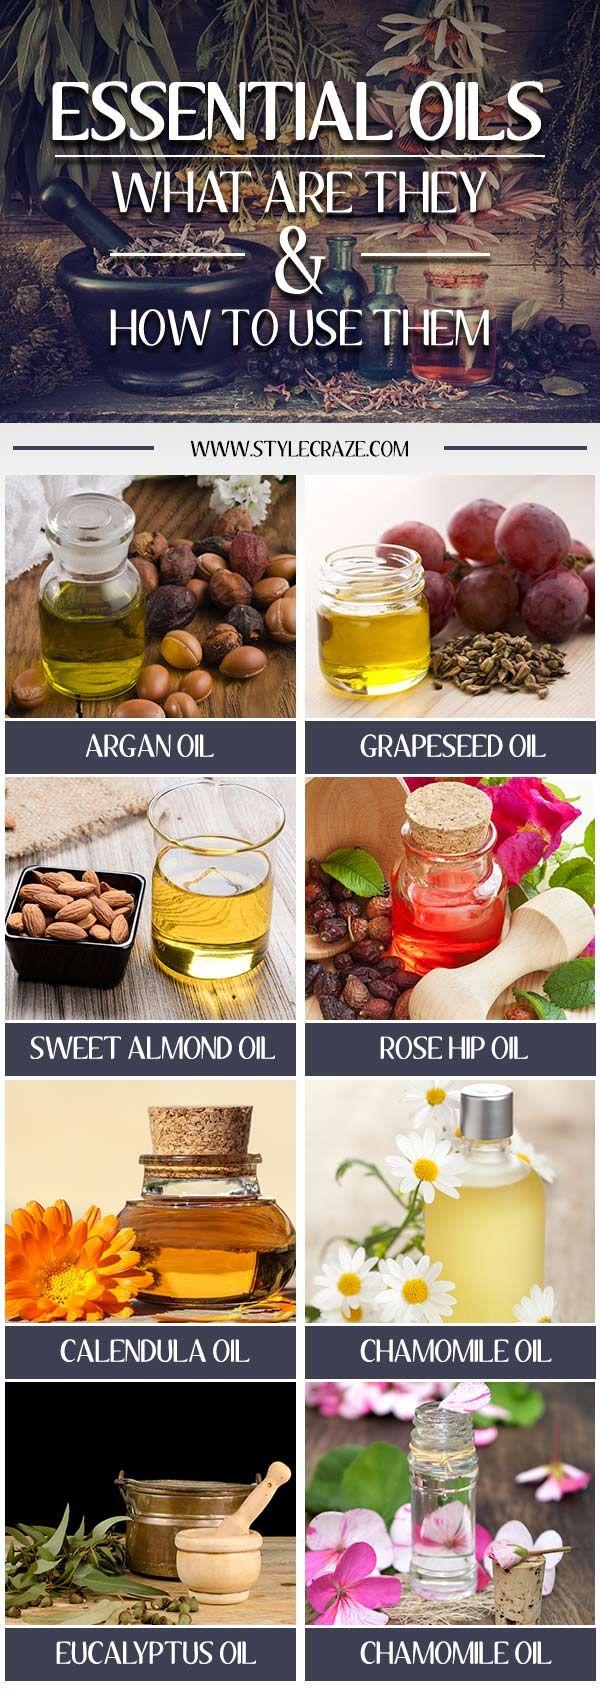 Who hasn't heard of the miraculous beauty oils? Any skin care messiah would vouch for the amazing beauty benefits of these natural oils that ...